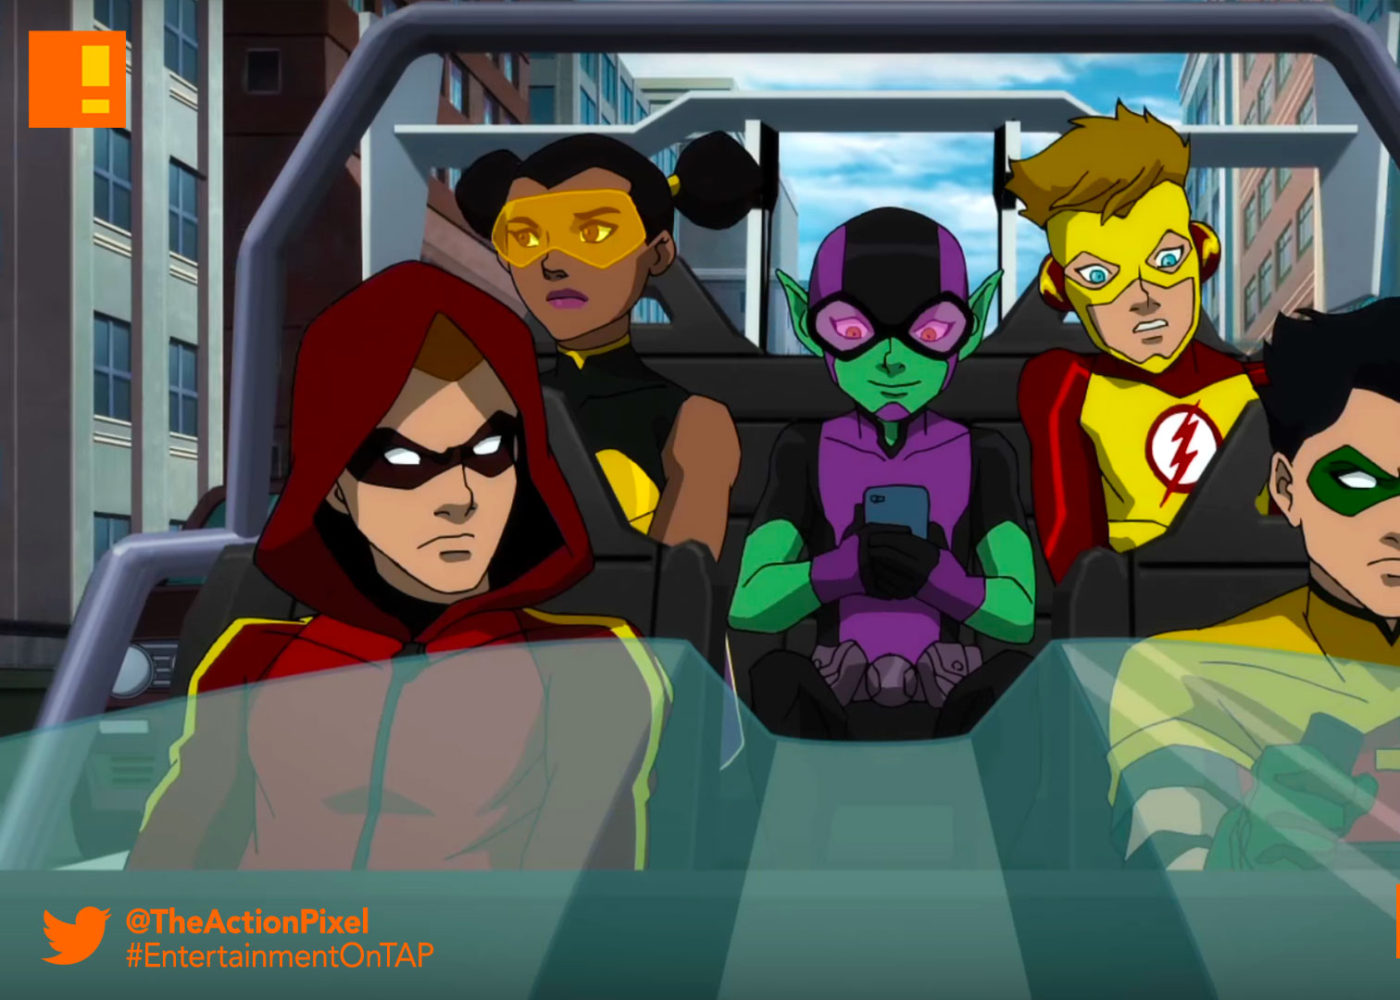 teen titans, judas contract, the action pixel, entertainment on tap, the action pixel, wb animation, warner bros., dc comics, starfire, clip teaser,clip, teaser, beast boy, robin, red arrow, kid flash, bumblebee,